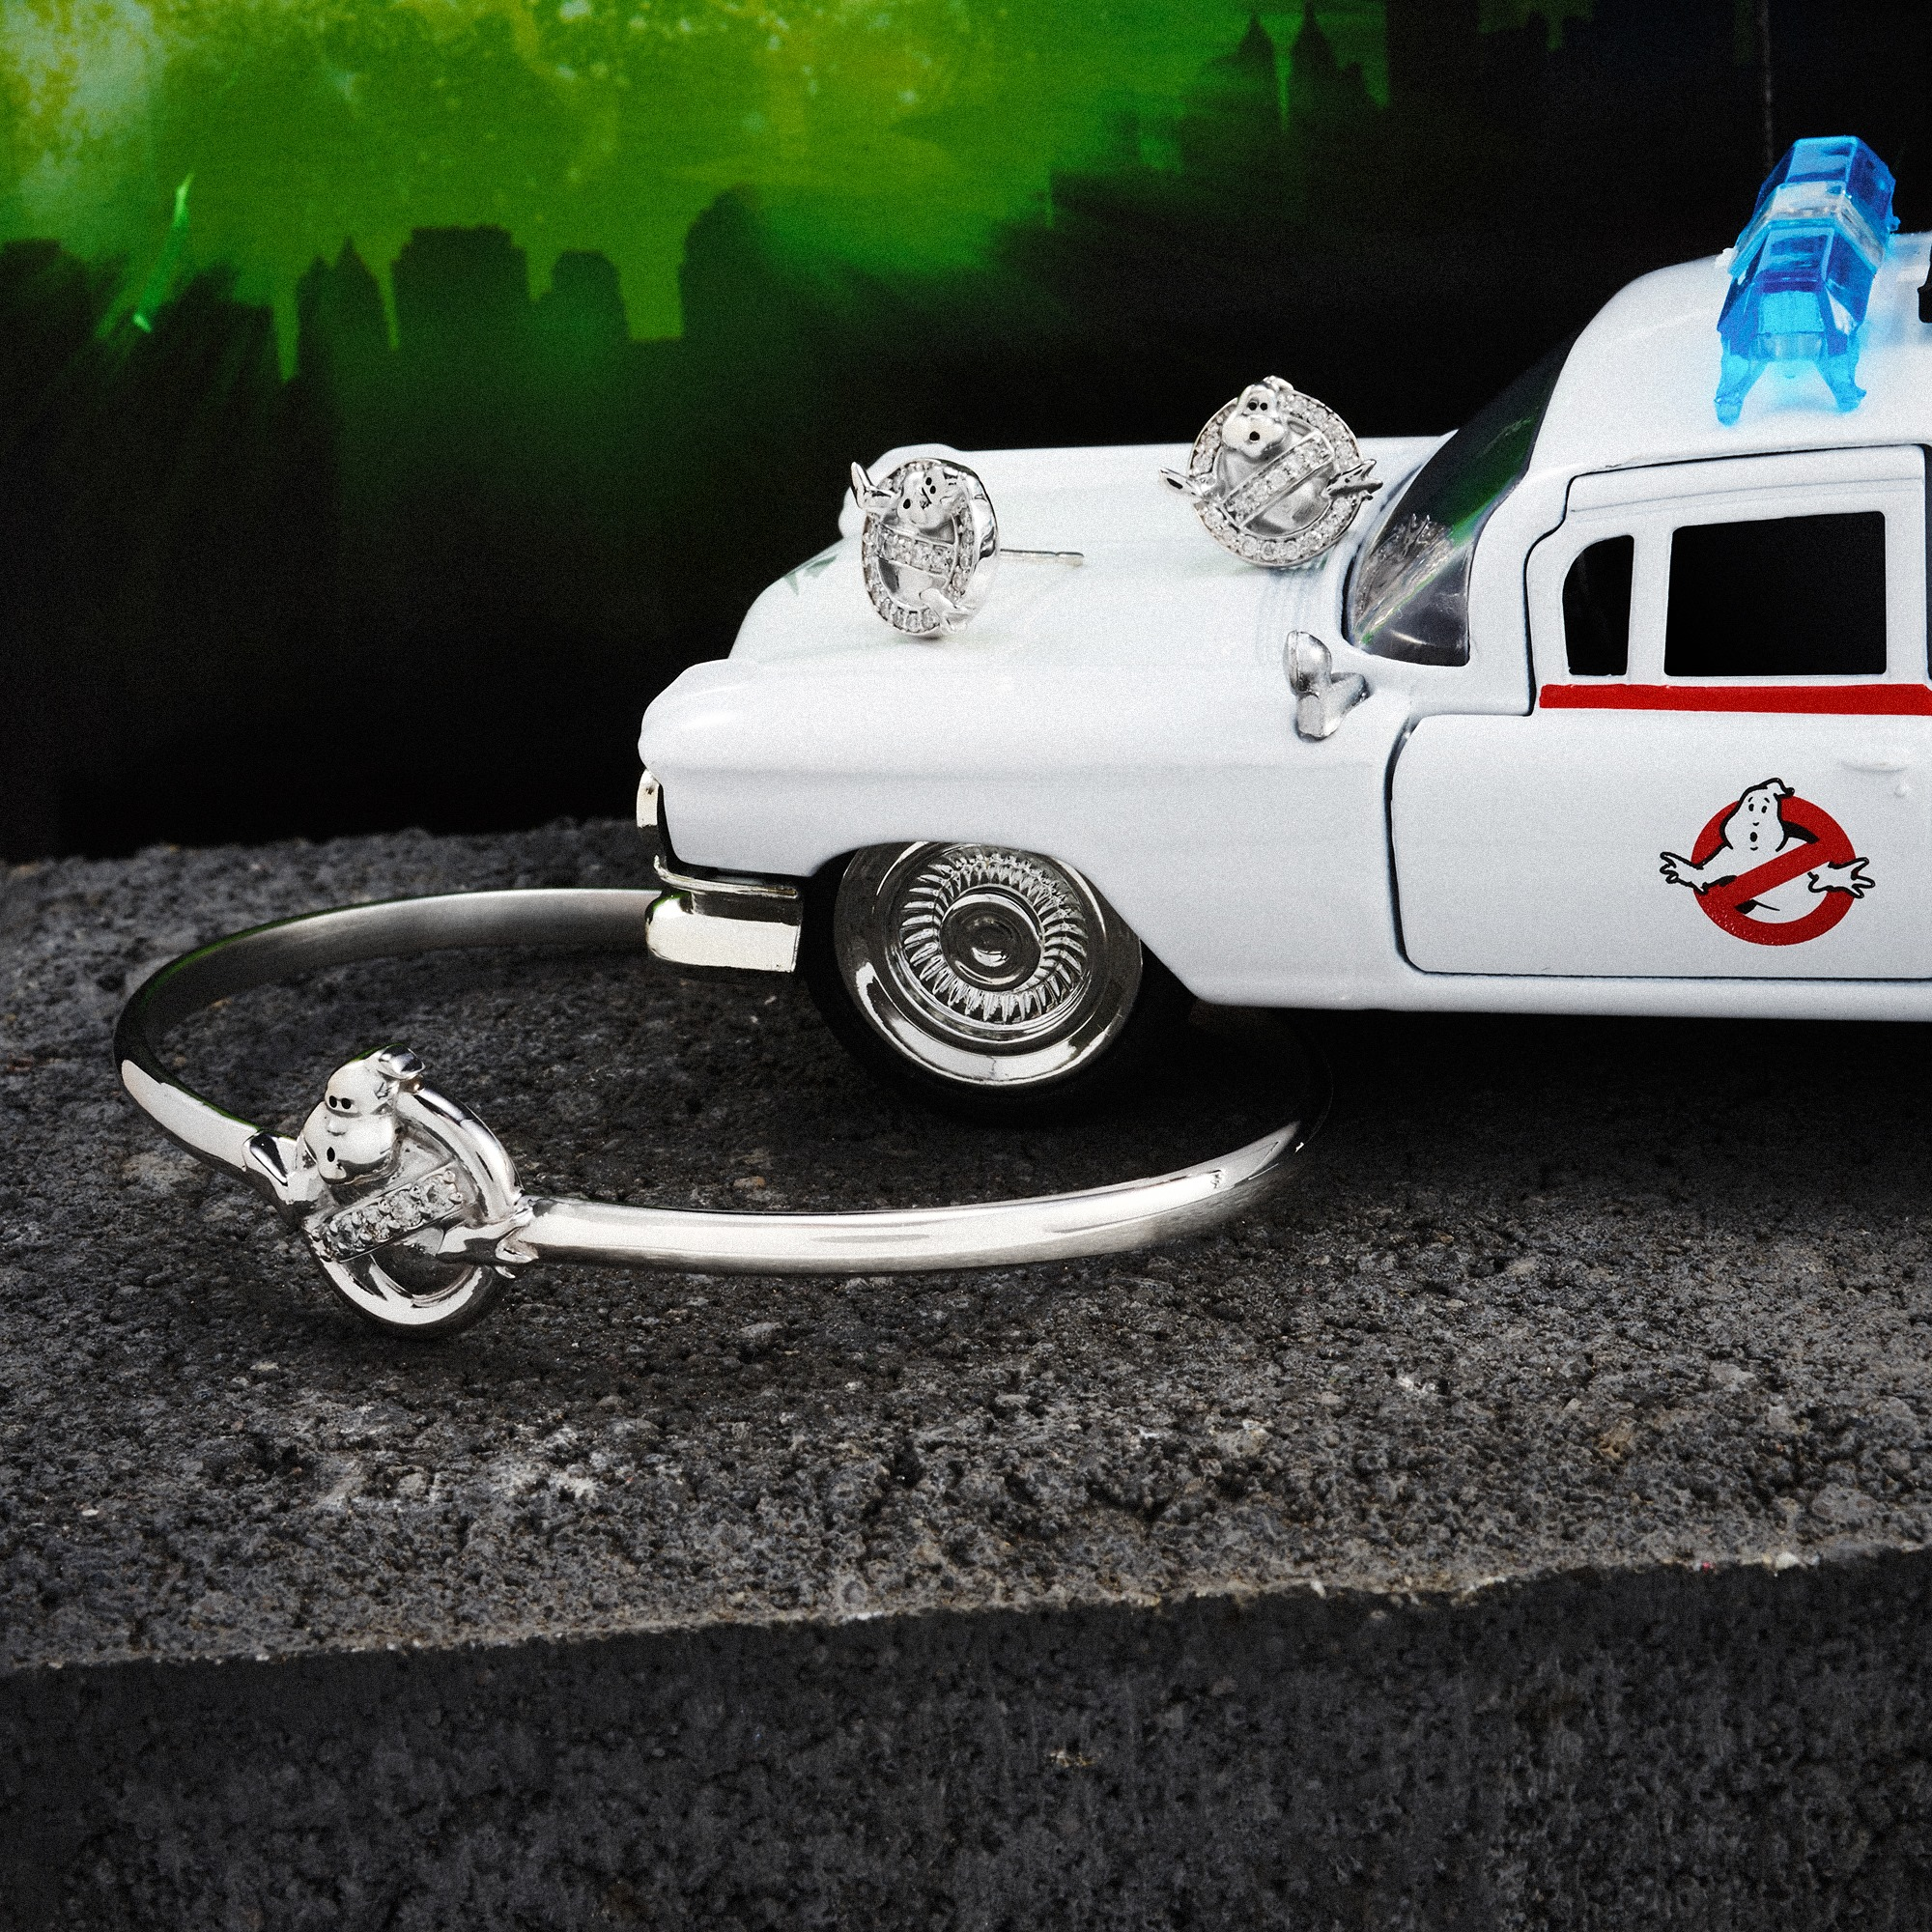 Bixler Ghostbusters related jewelry